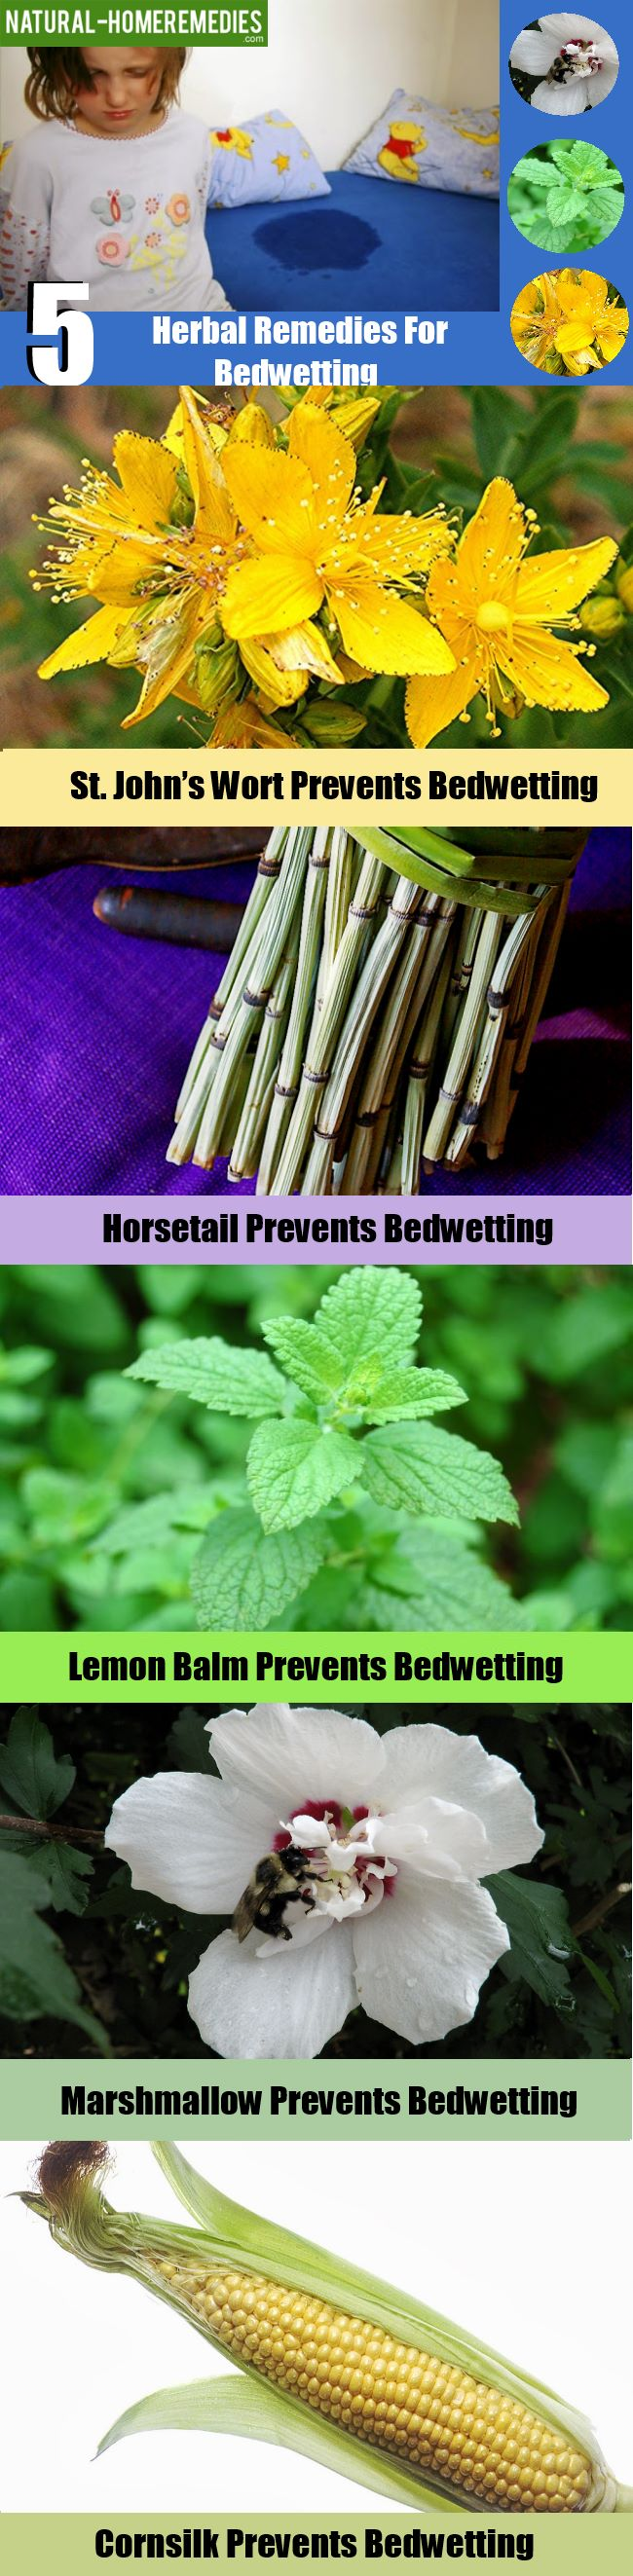 5 Best Herbal Remedies For Bedwetting